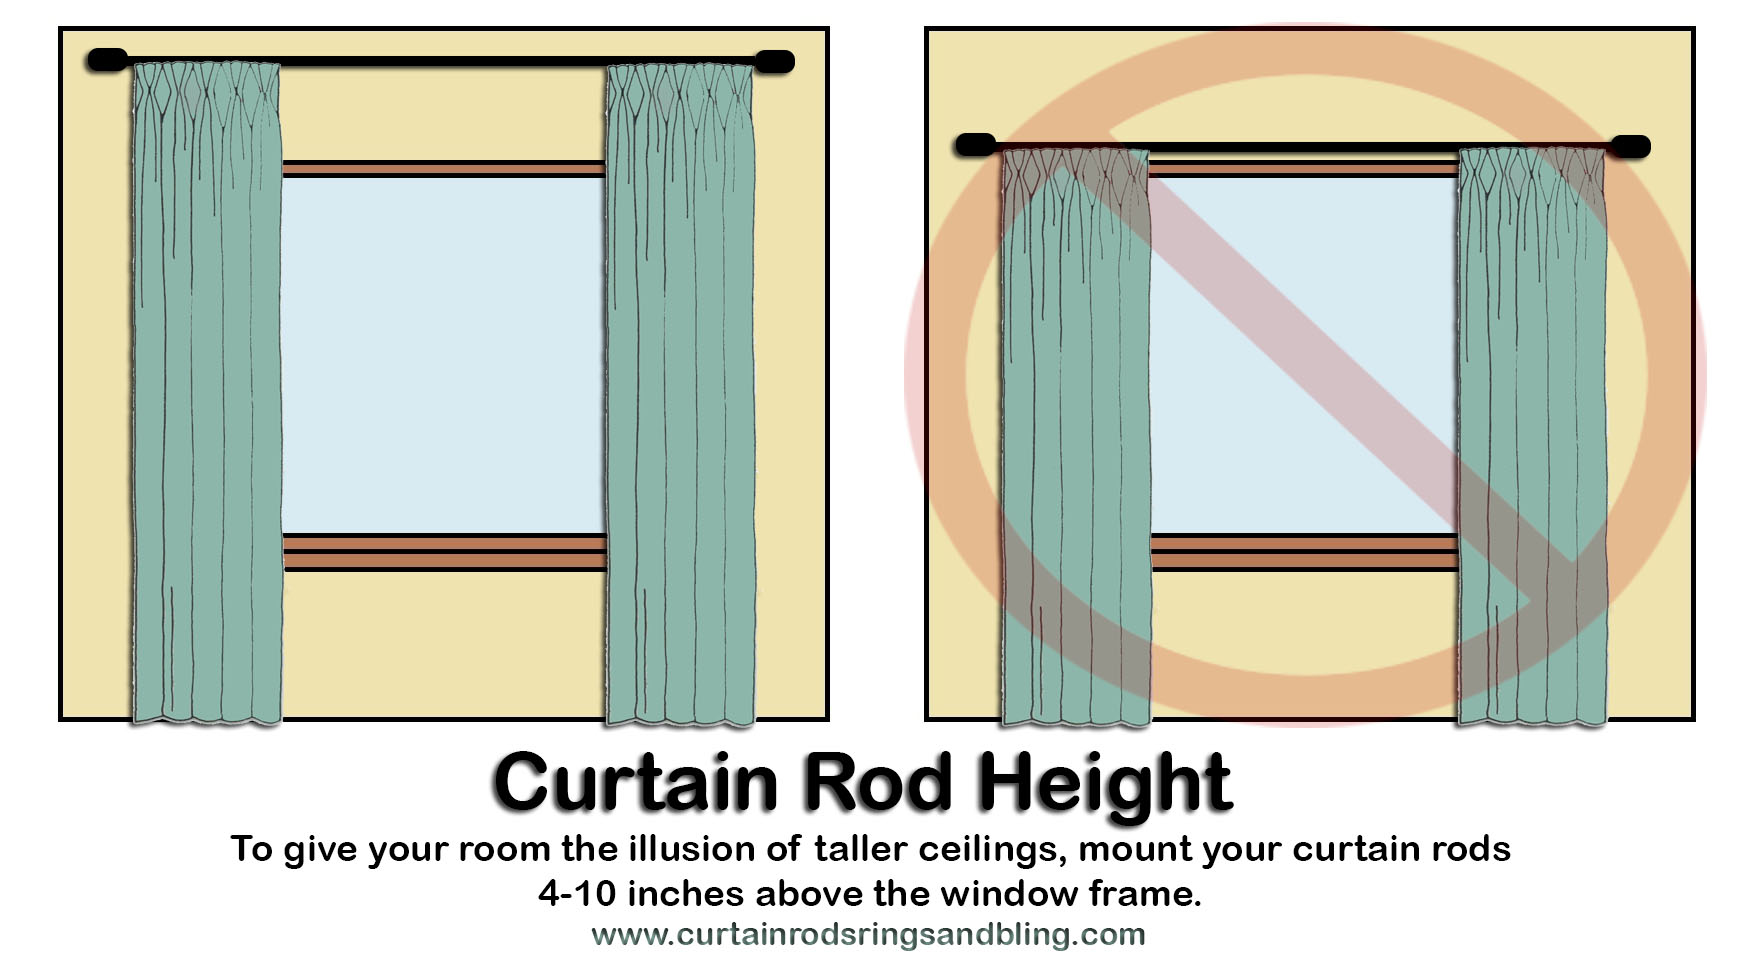 how to hang up curtain rods mount curtain rods height abda abda window fashions 8674